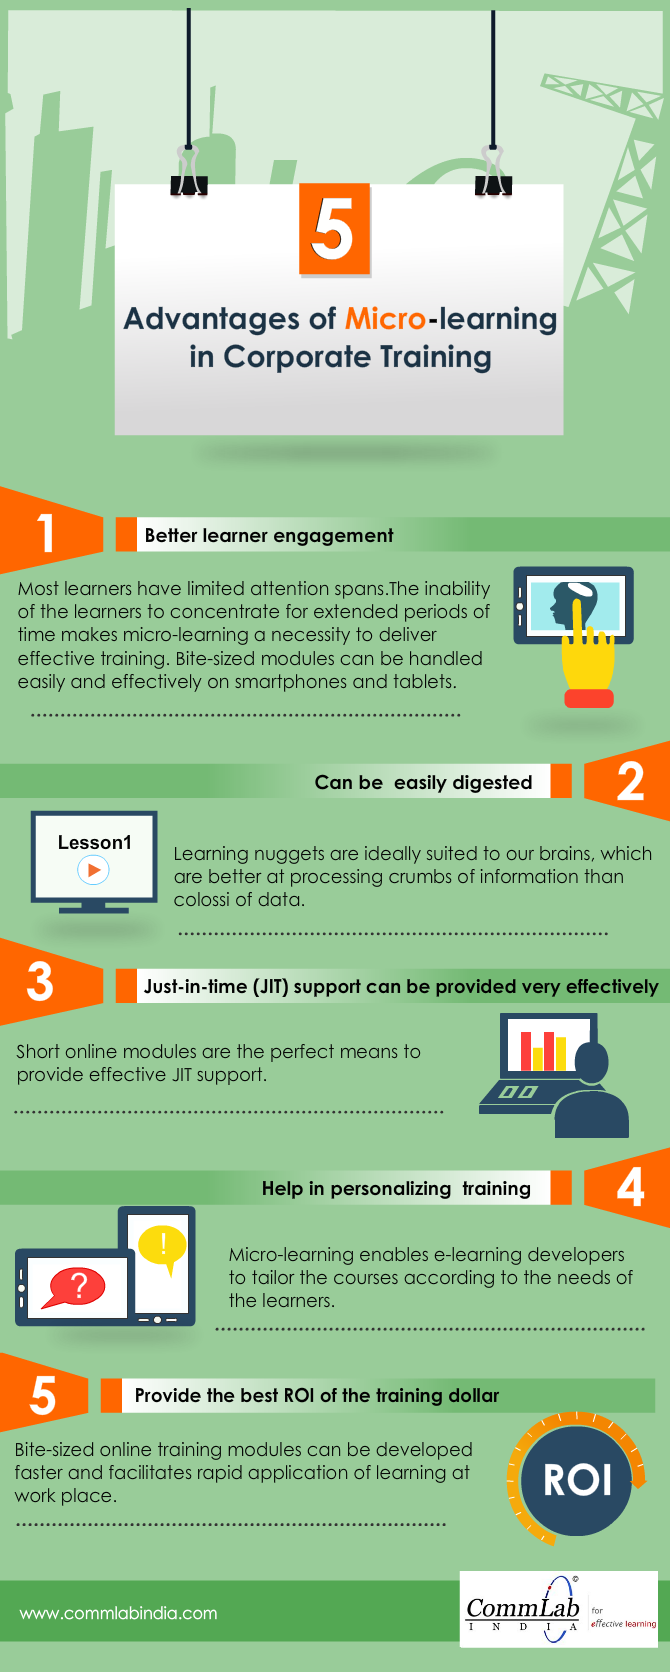 Micro-Learning - The Key to Better Corporate Training [Infographic]